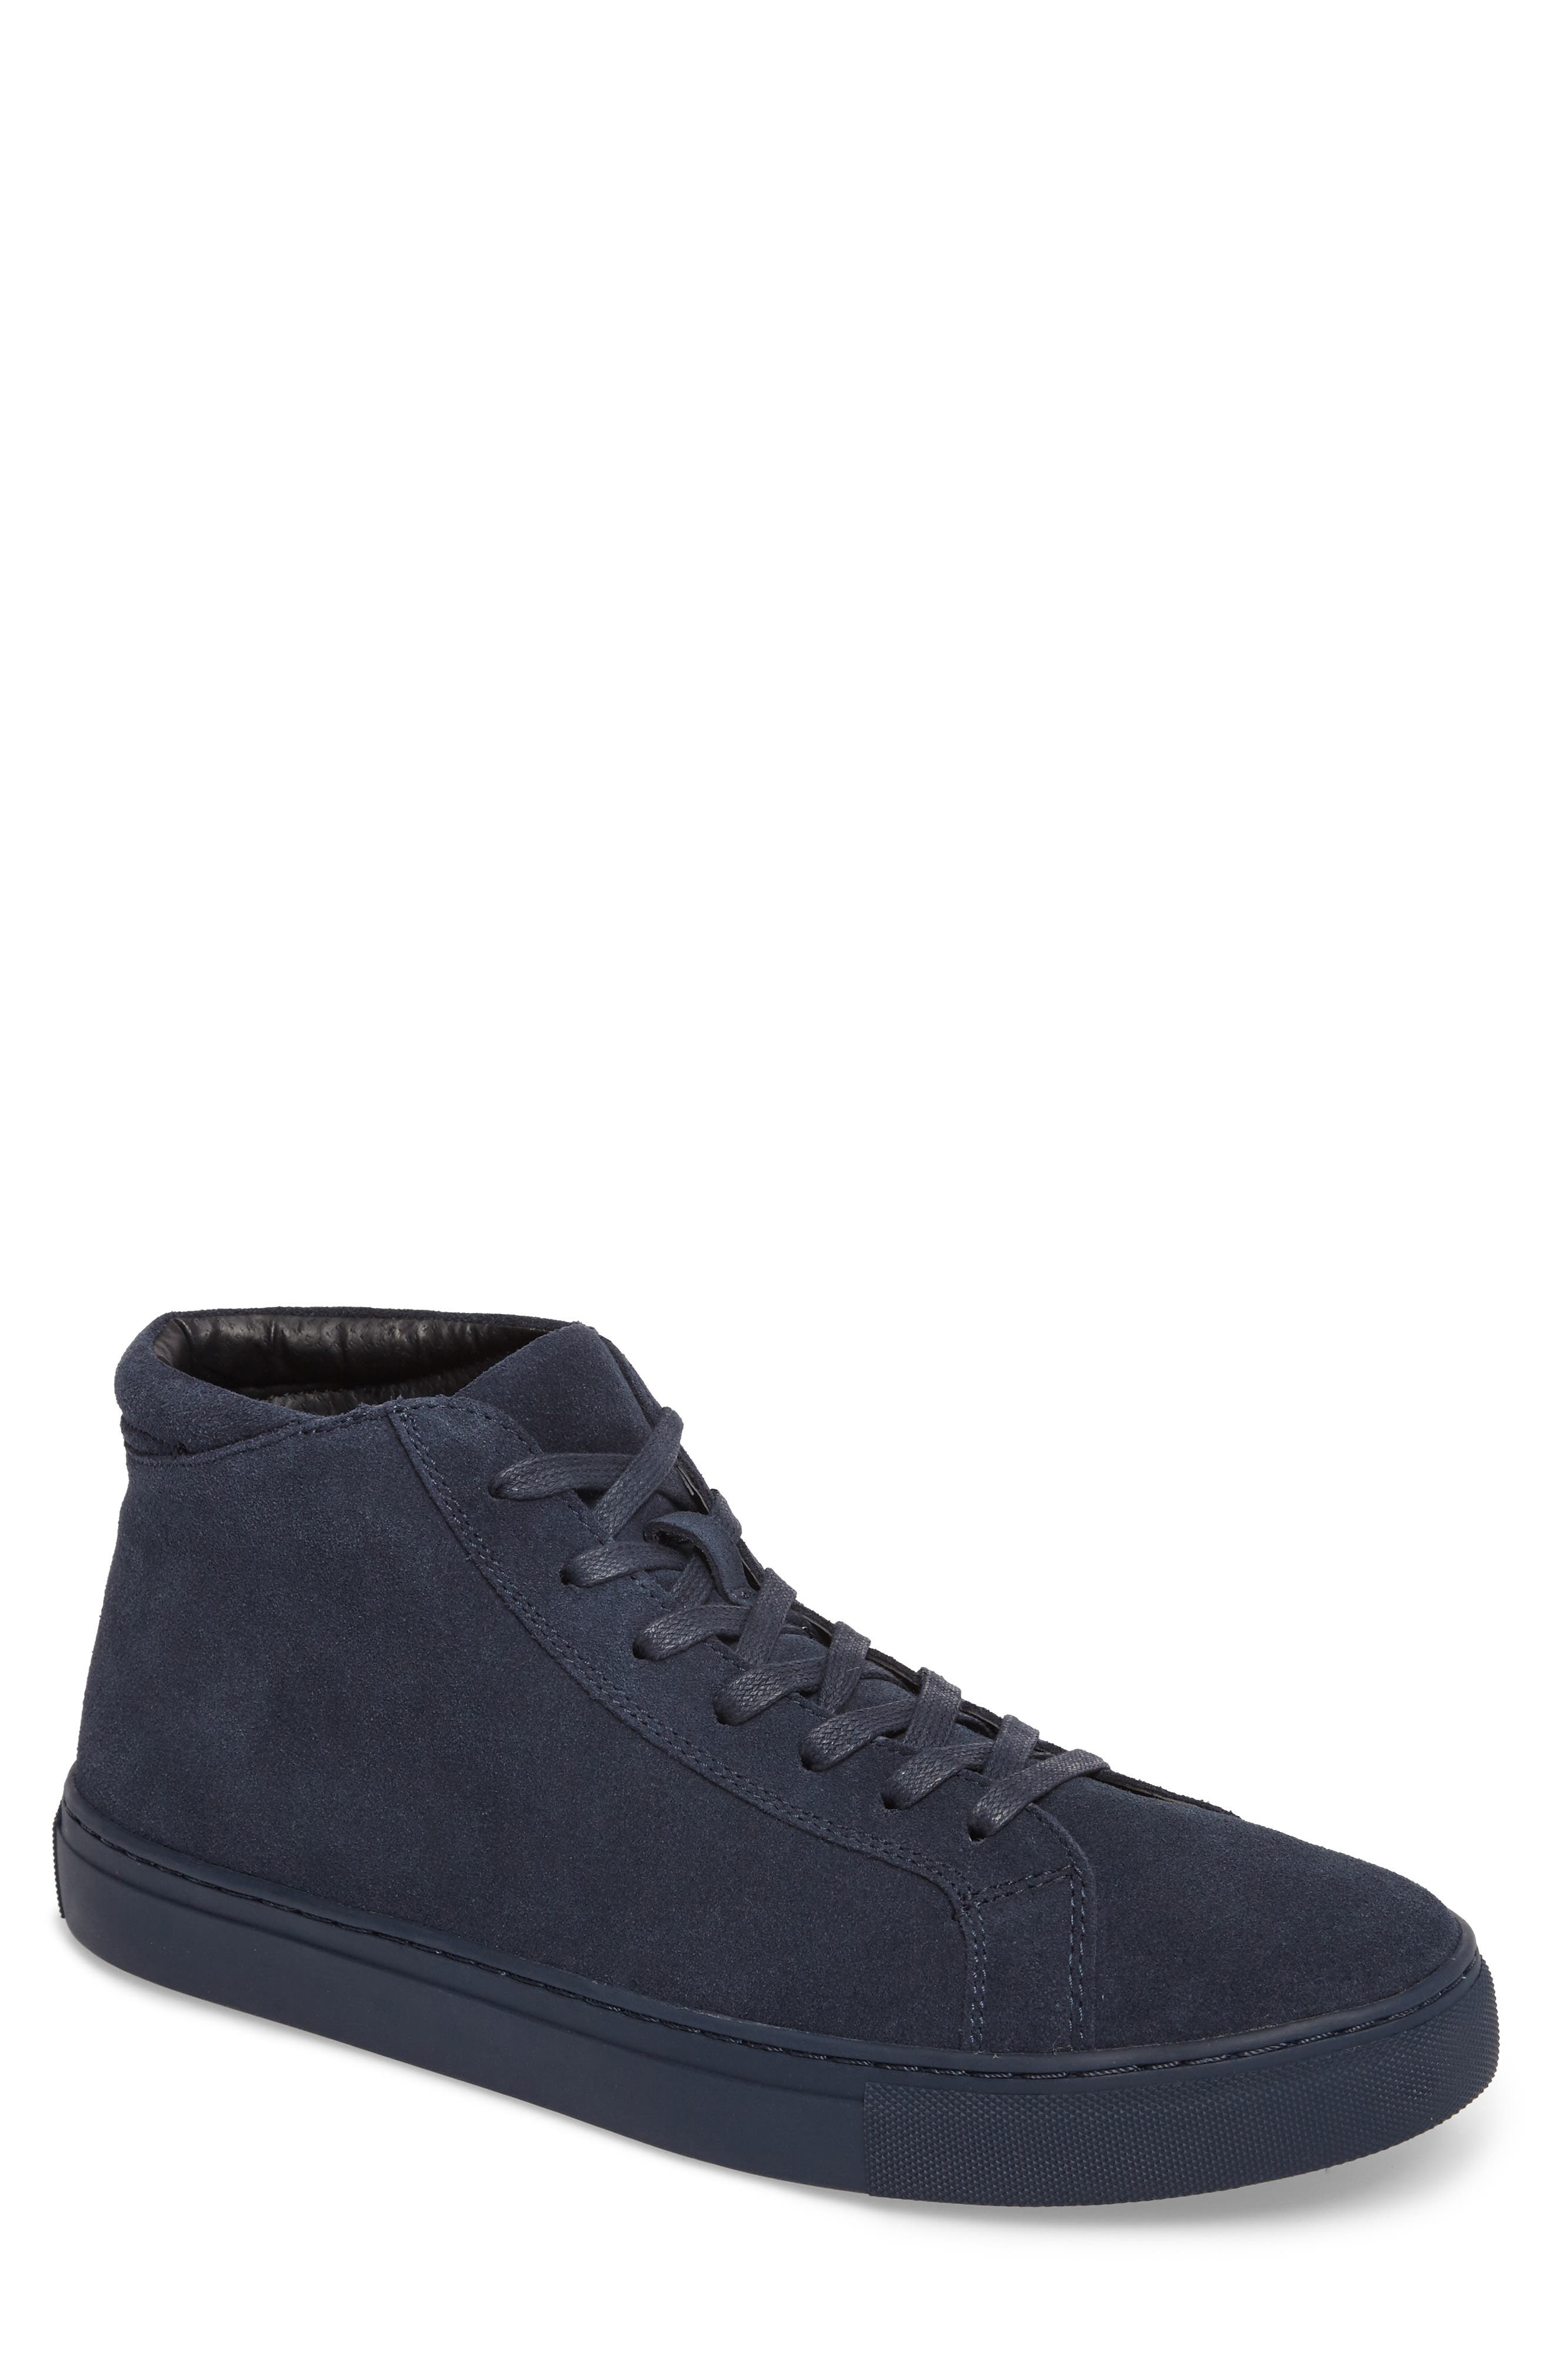 Main Image - Kenneth Cole Reaction Mid Sneaker (Men)